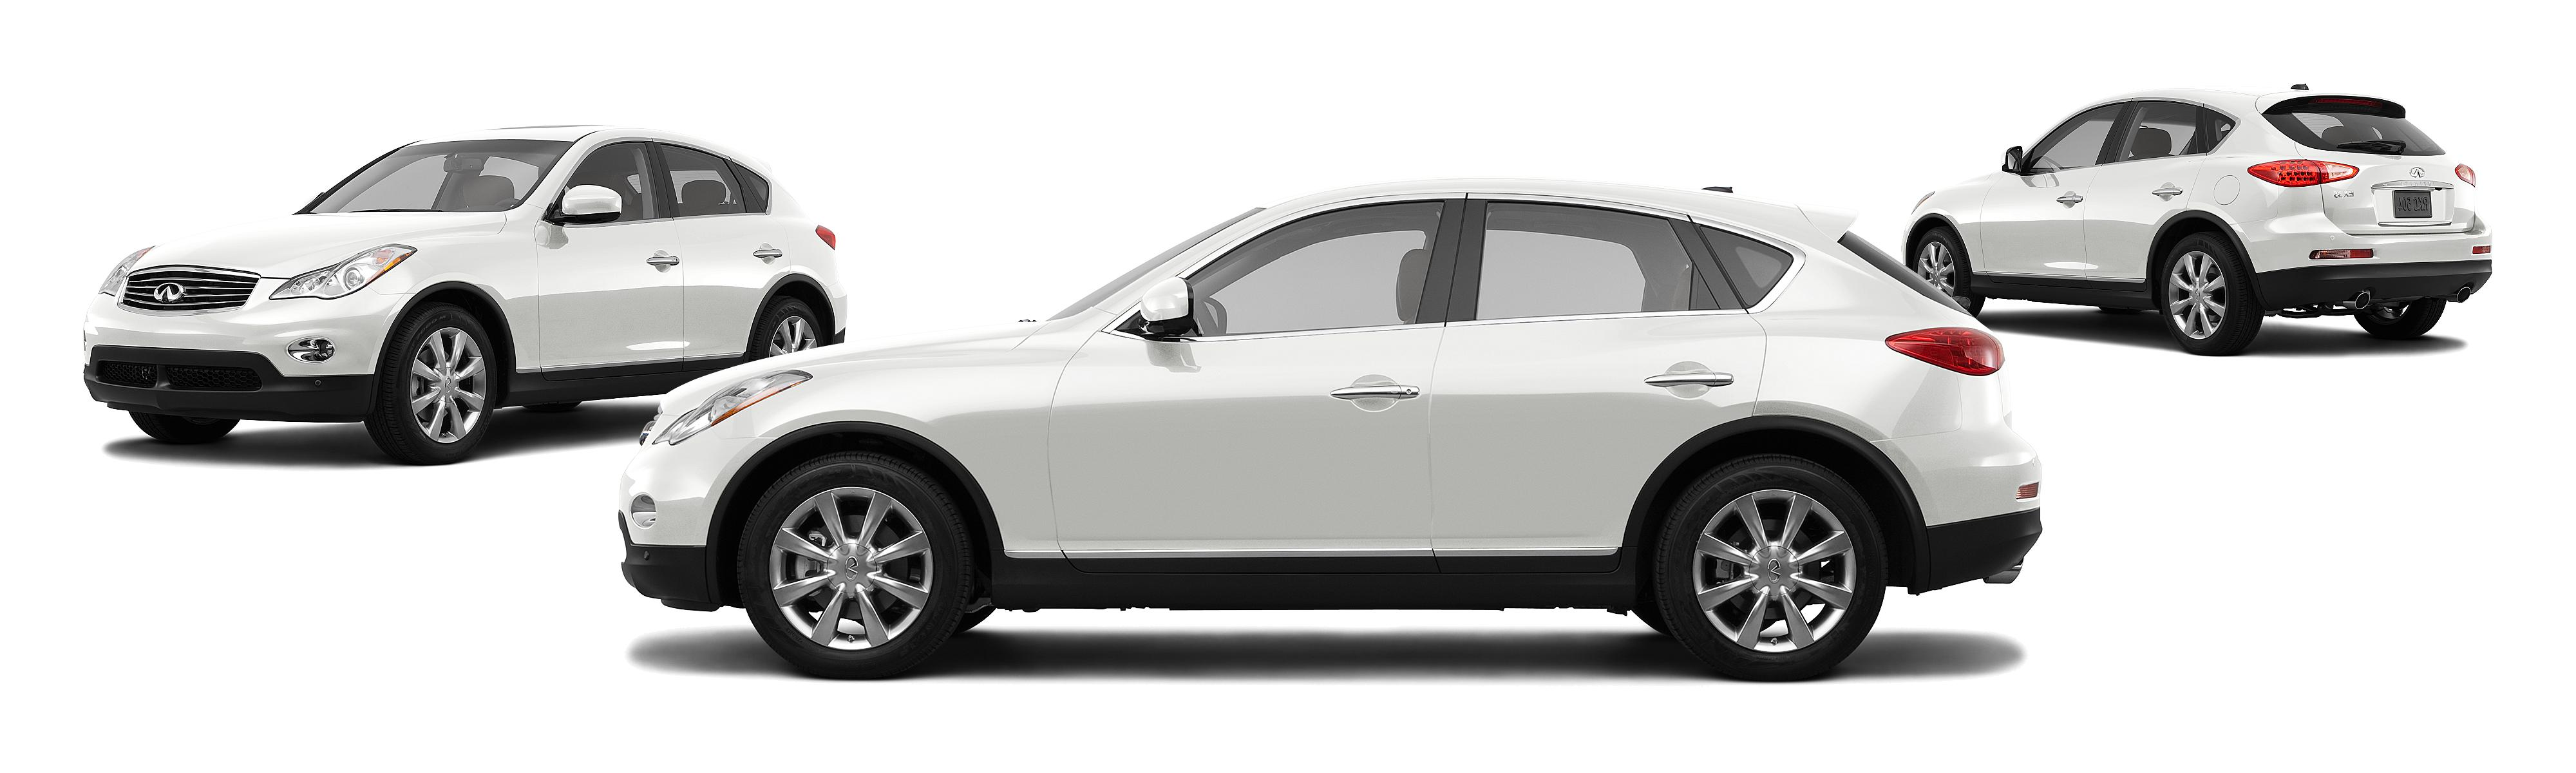 its premium infinity makes a debut global crossover infiniti active